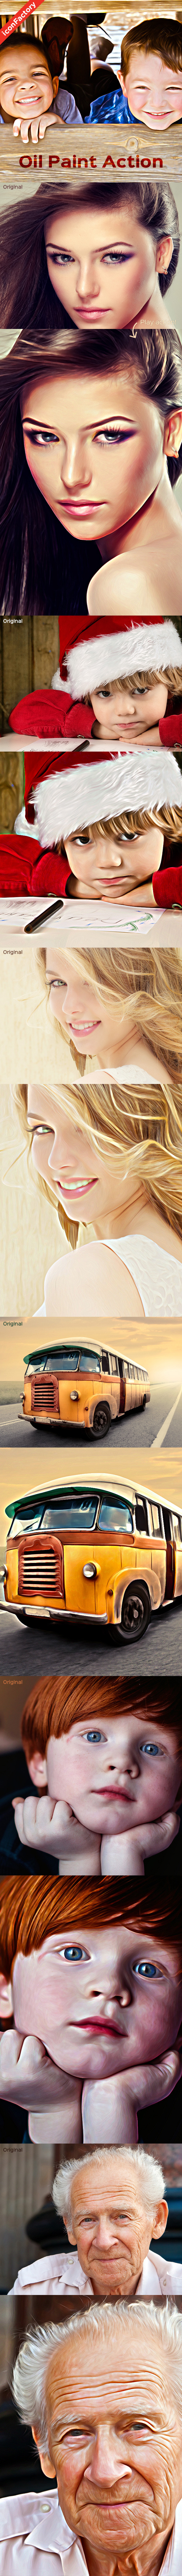 GraphicRiver Oil Paint Action 9742848